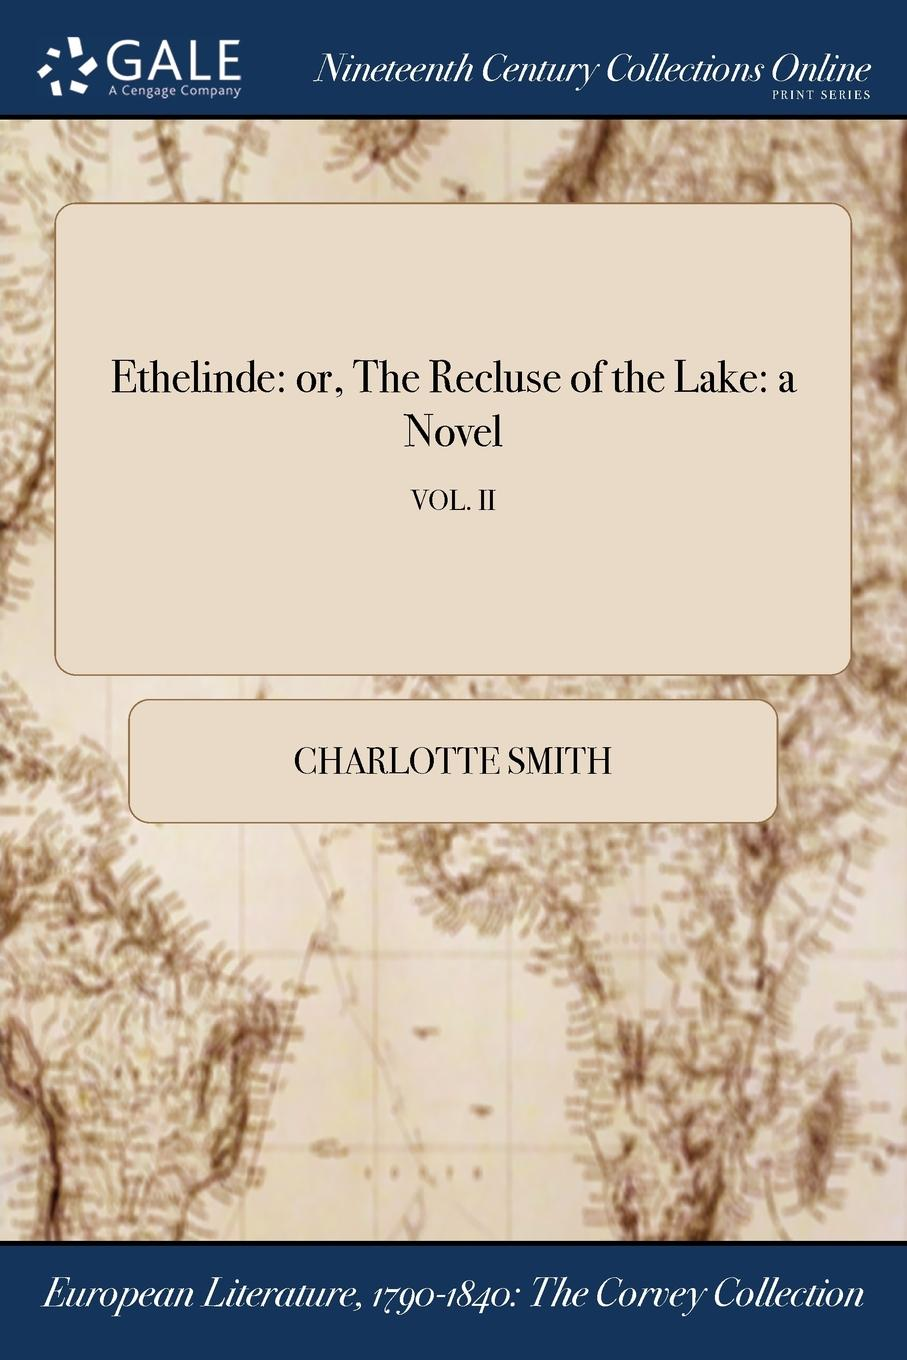 Charlotte Smith Ethelinde. or, The Recluse of the Lake: a Novel; VOL. II